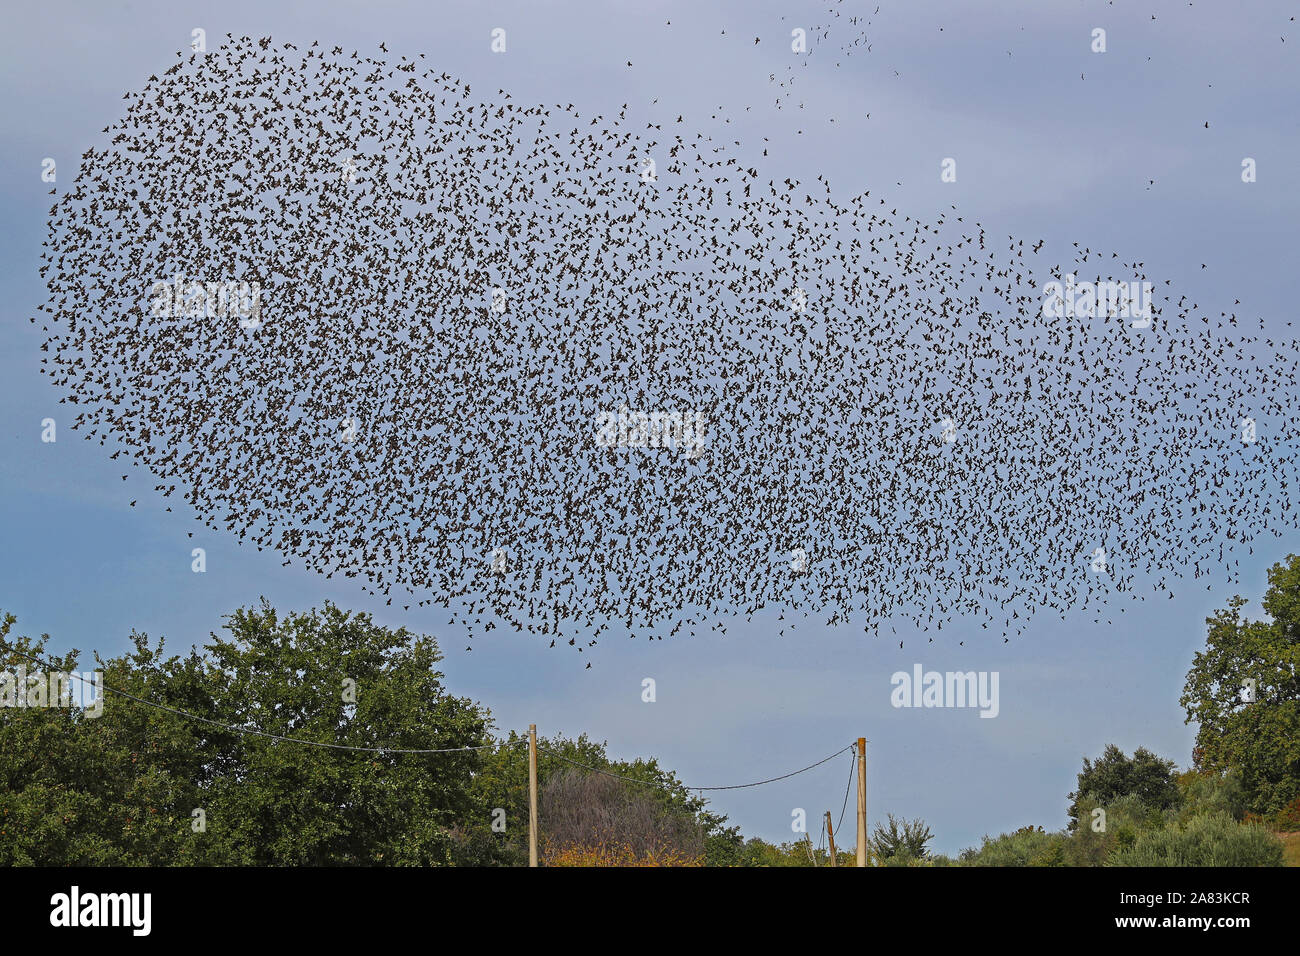 a large flock or murmuration of starlings flocking together and flying in formation above a field in rural Italy Stock Photo